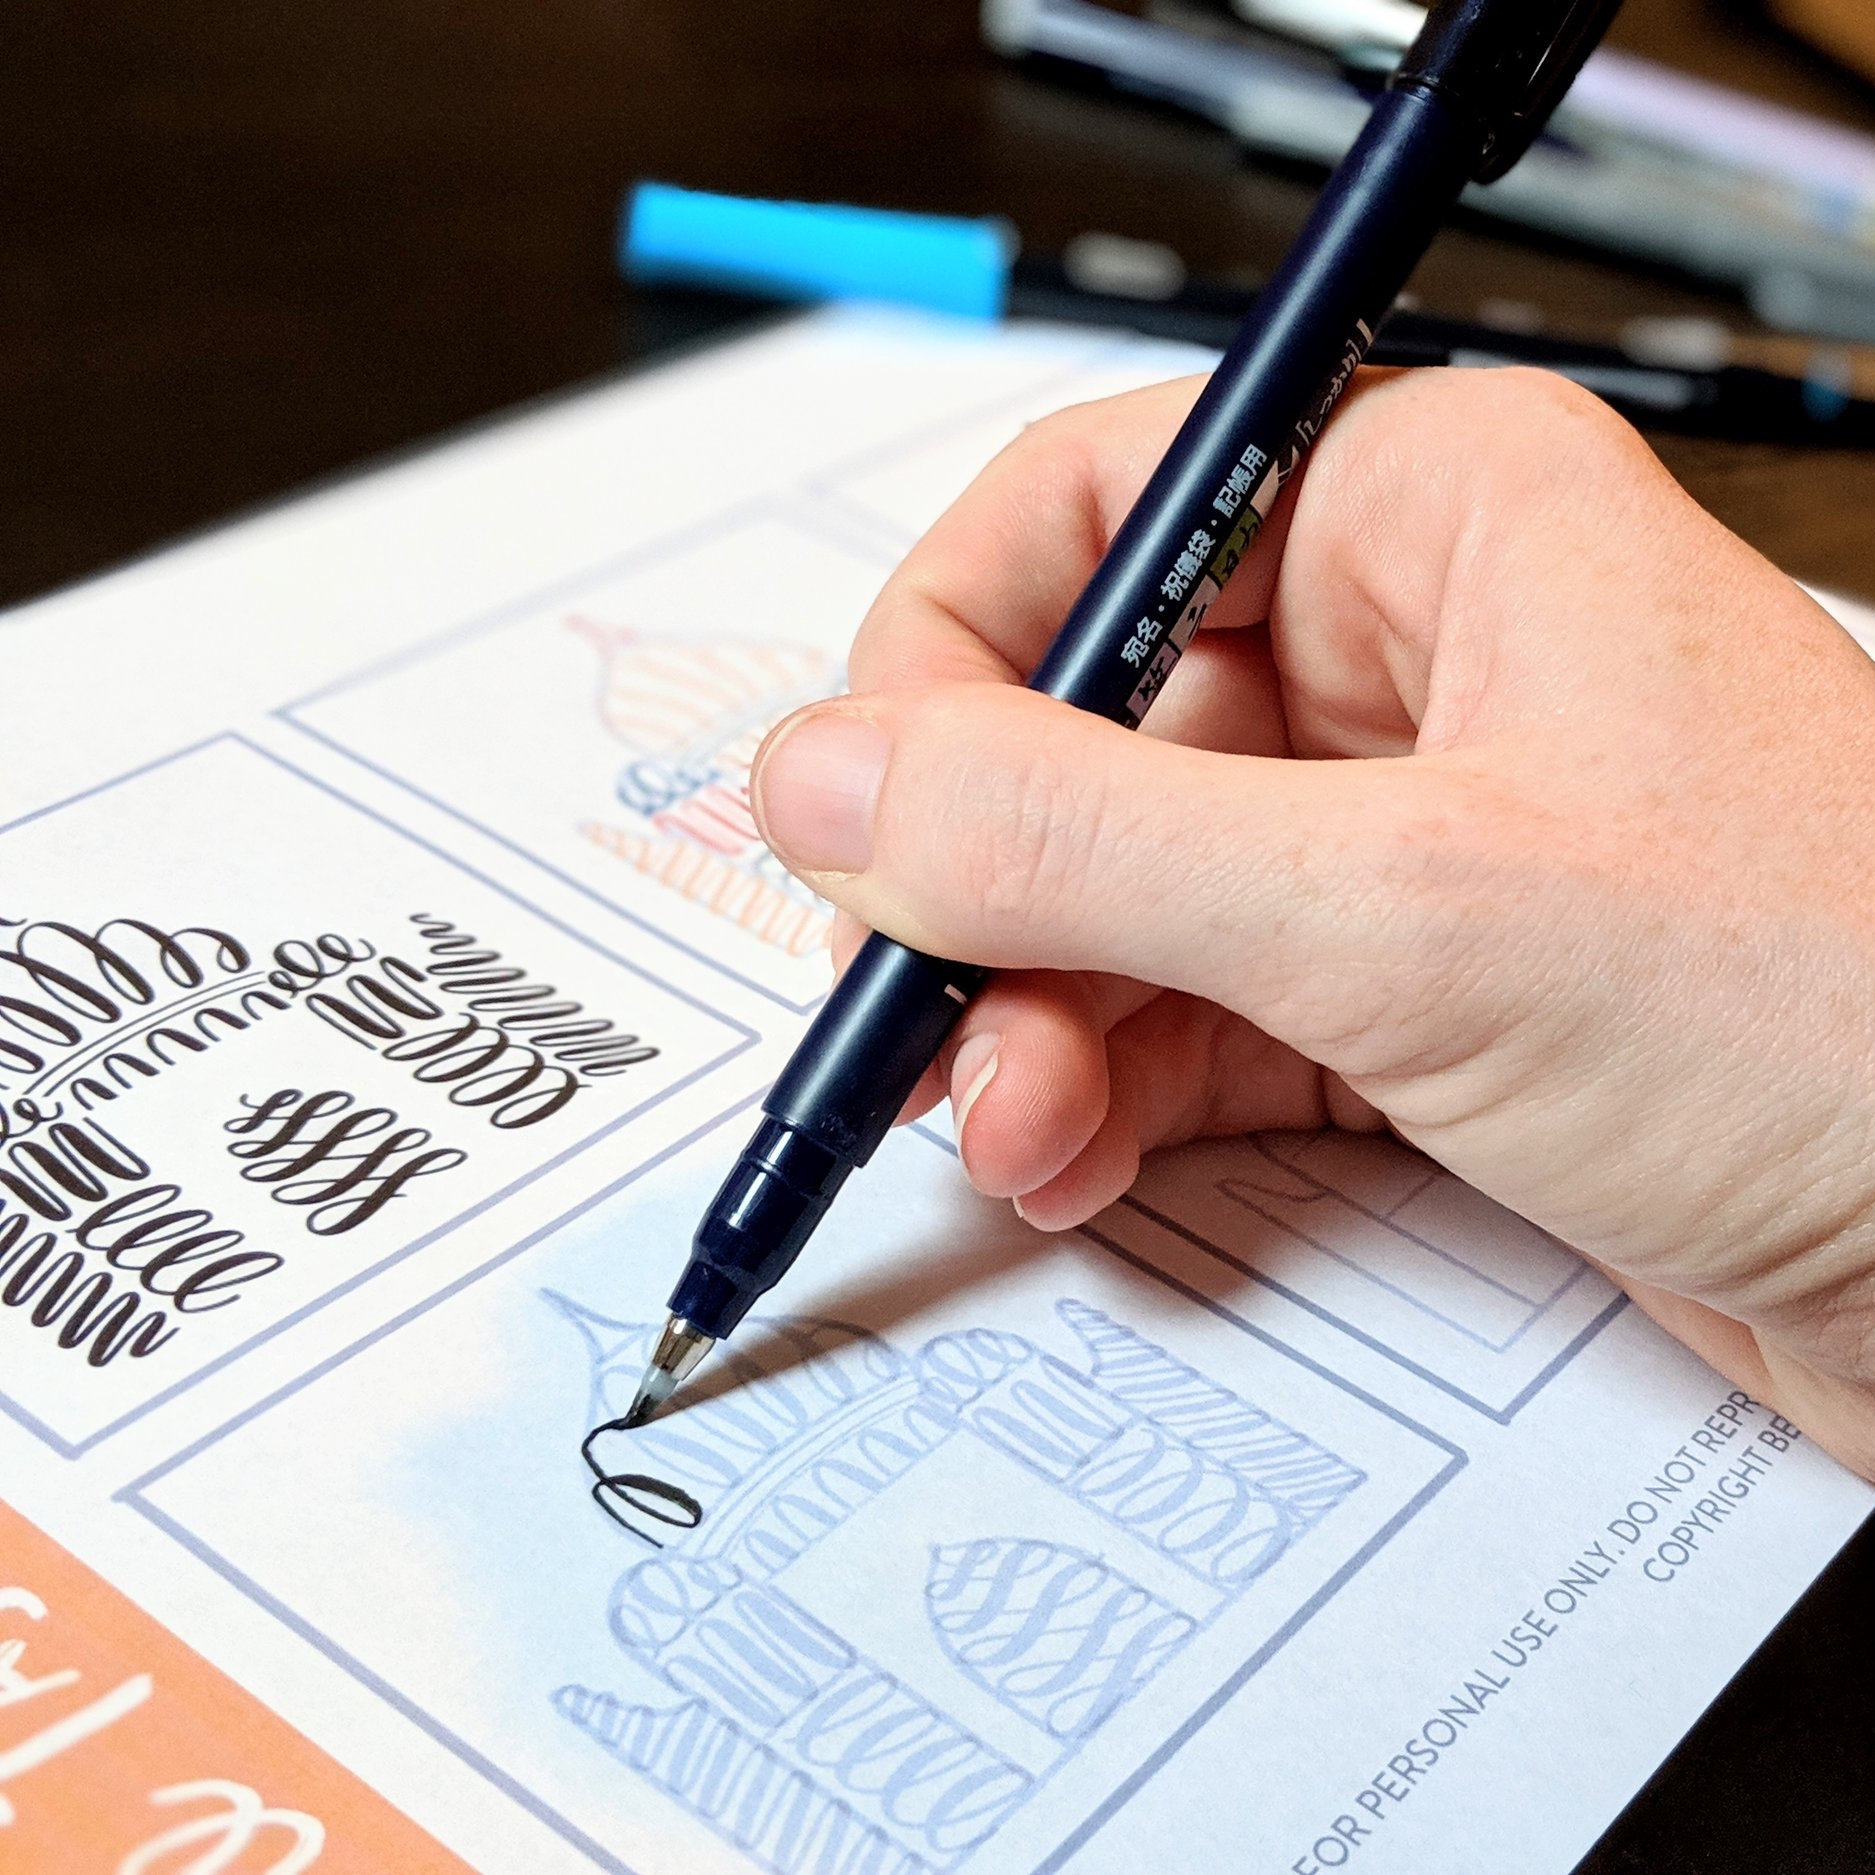 00100dPORTRAIT_00100_BURST20190730171148132_COVER.jpg